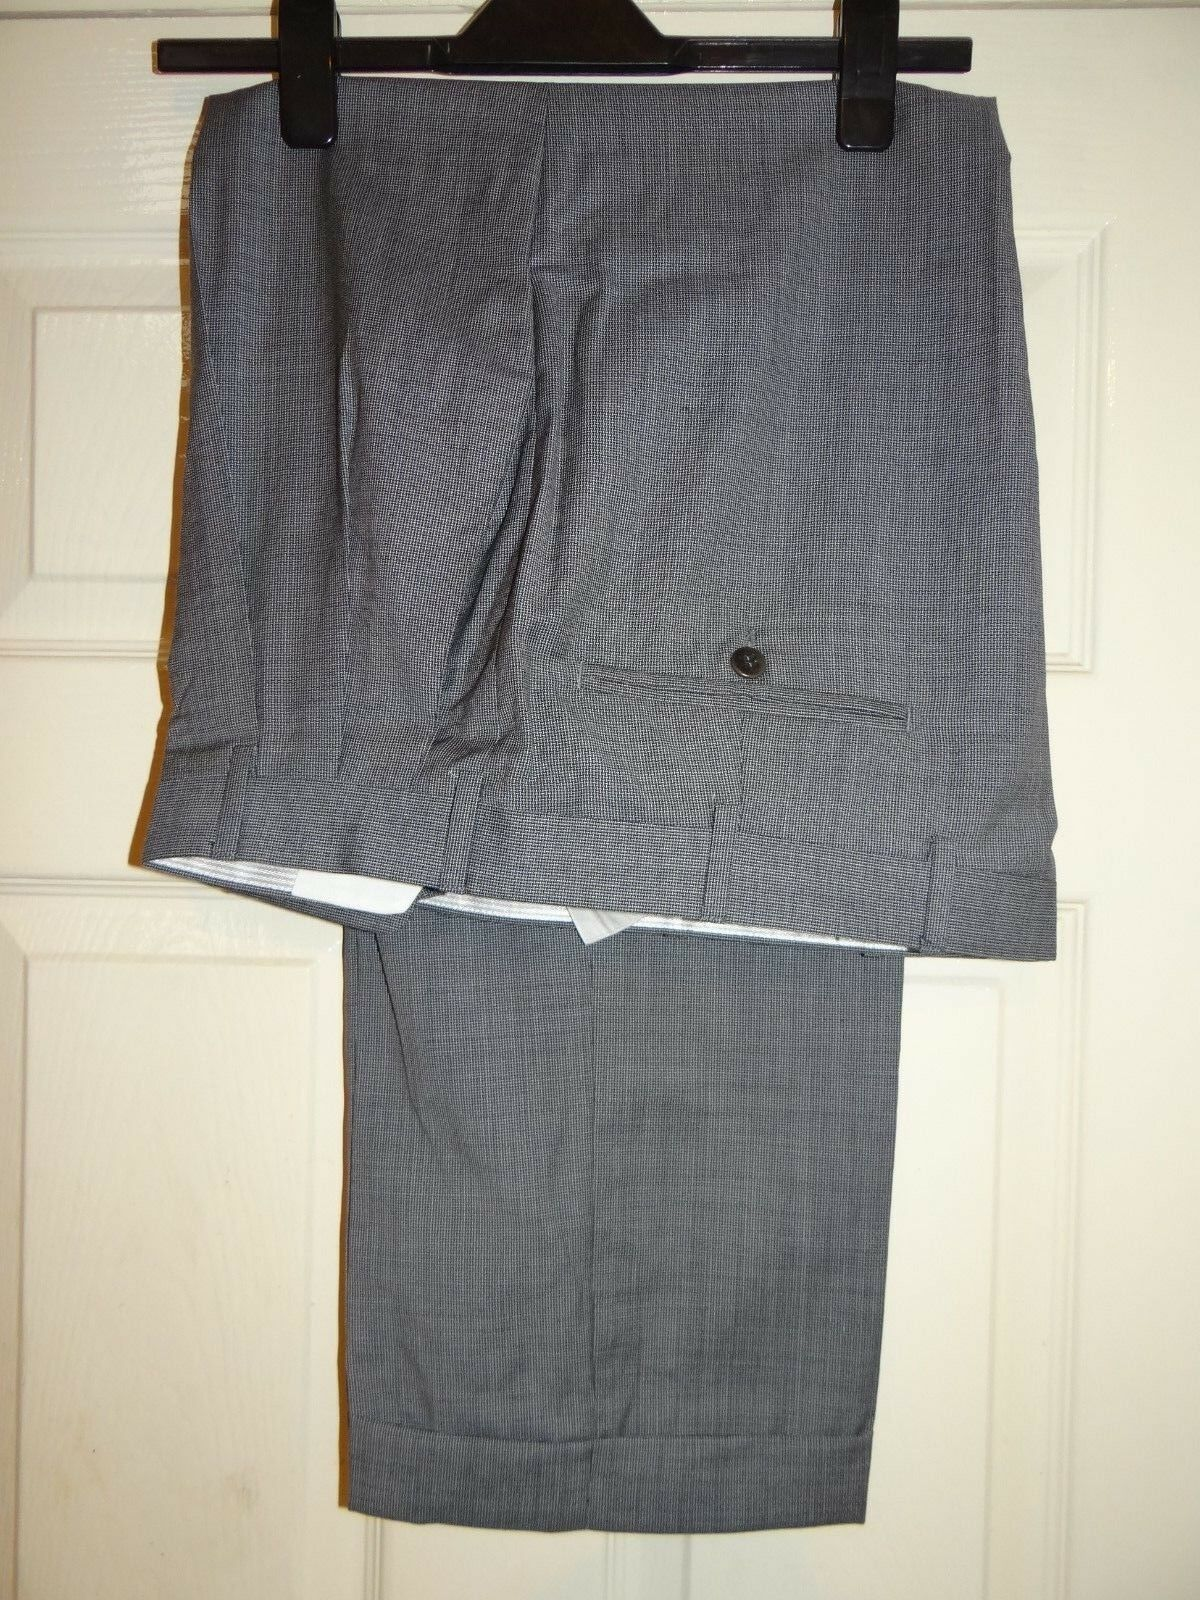 ZANELLA @ NORDSTROM -USA FAB ELEGANT TAILORED GREY TROUSERS W36 28